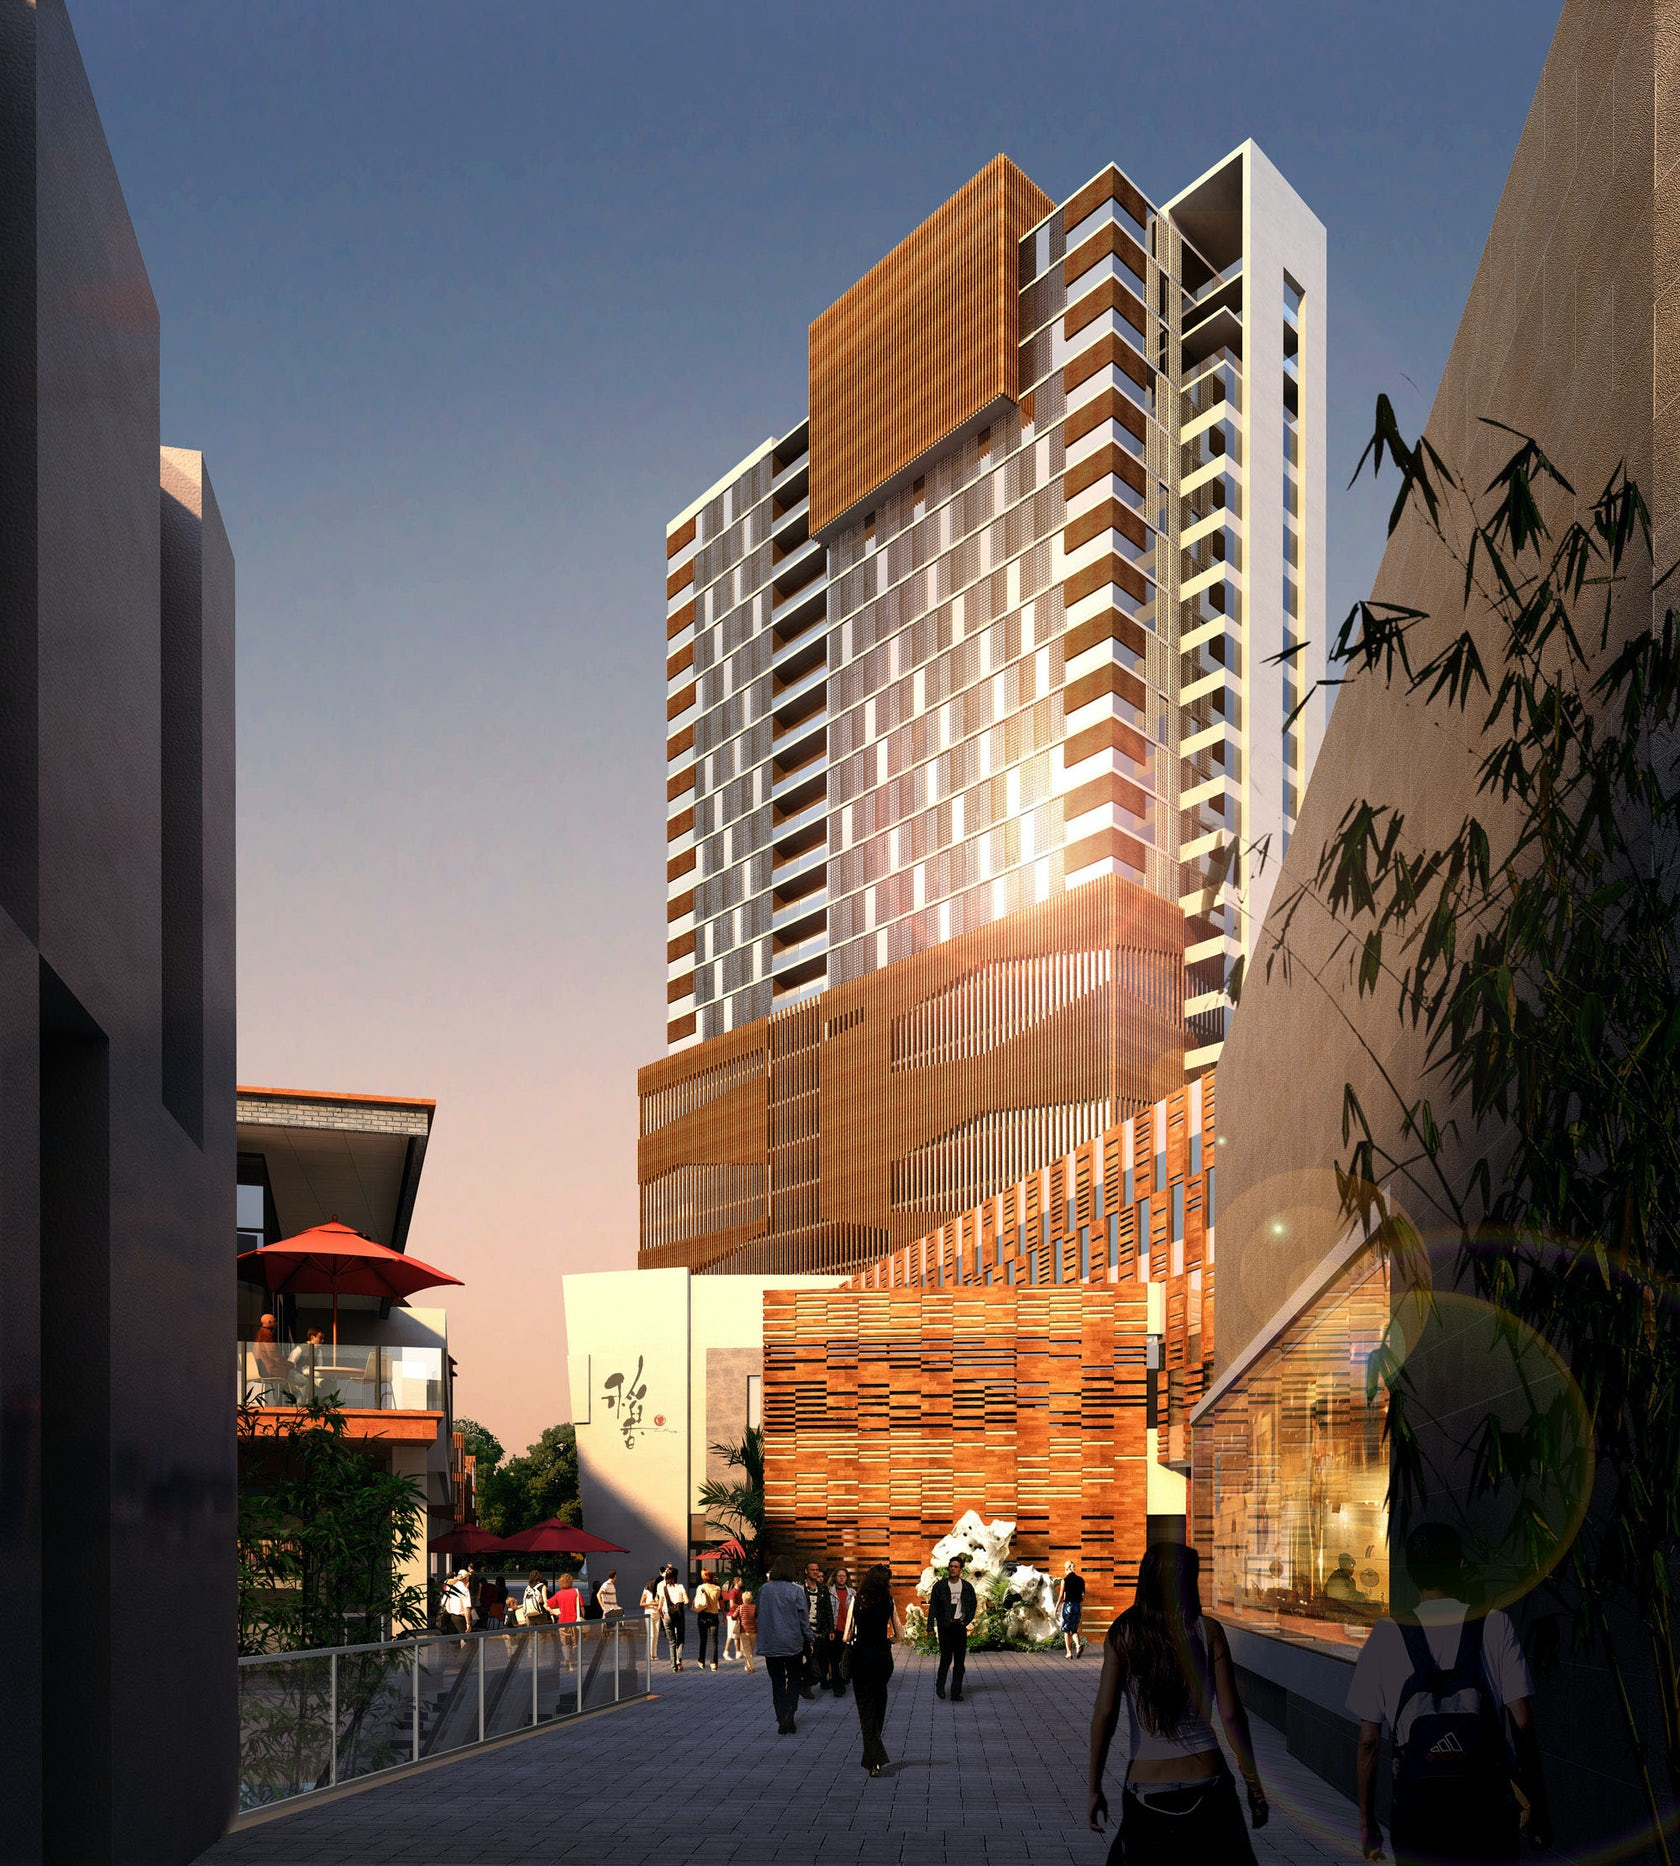 Jiangsu Hotel Residential And Retail Complex